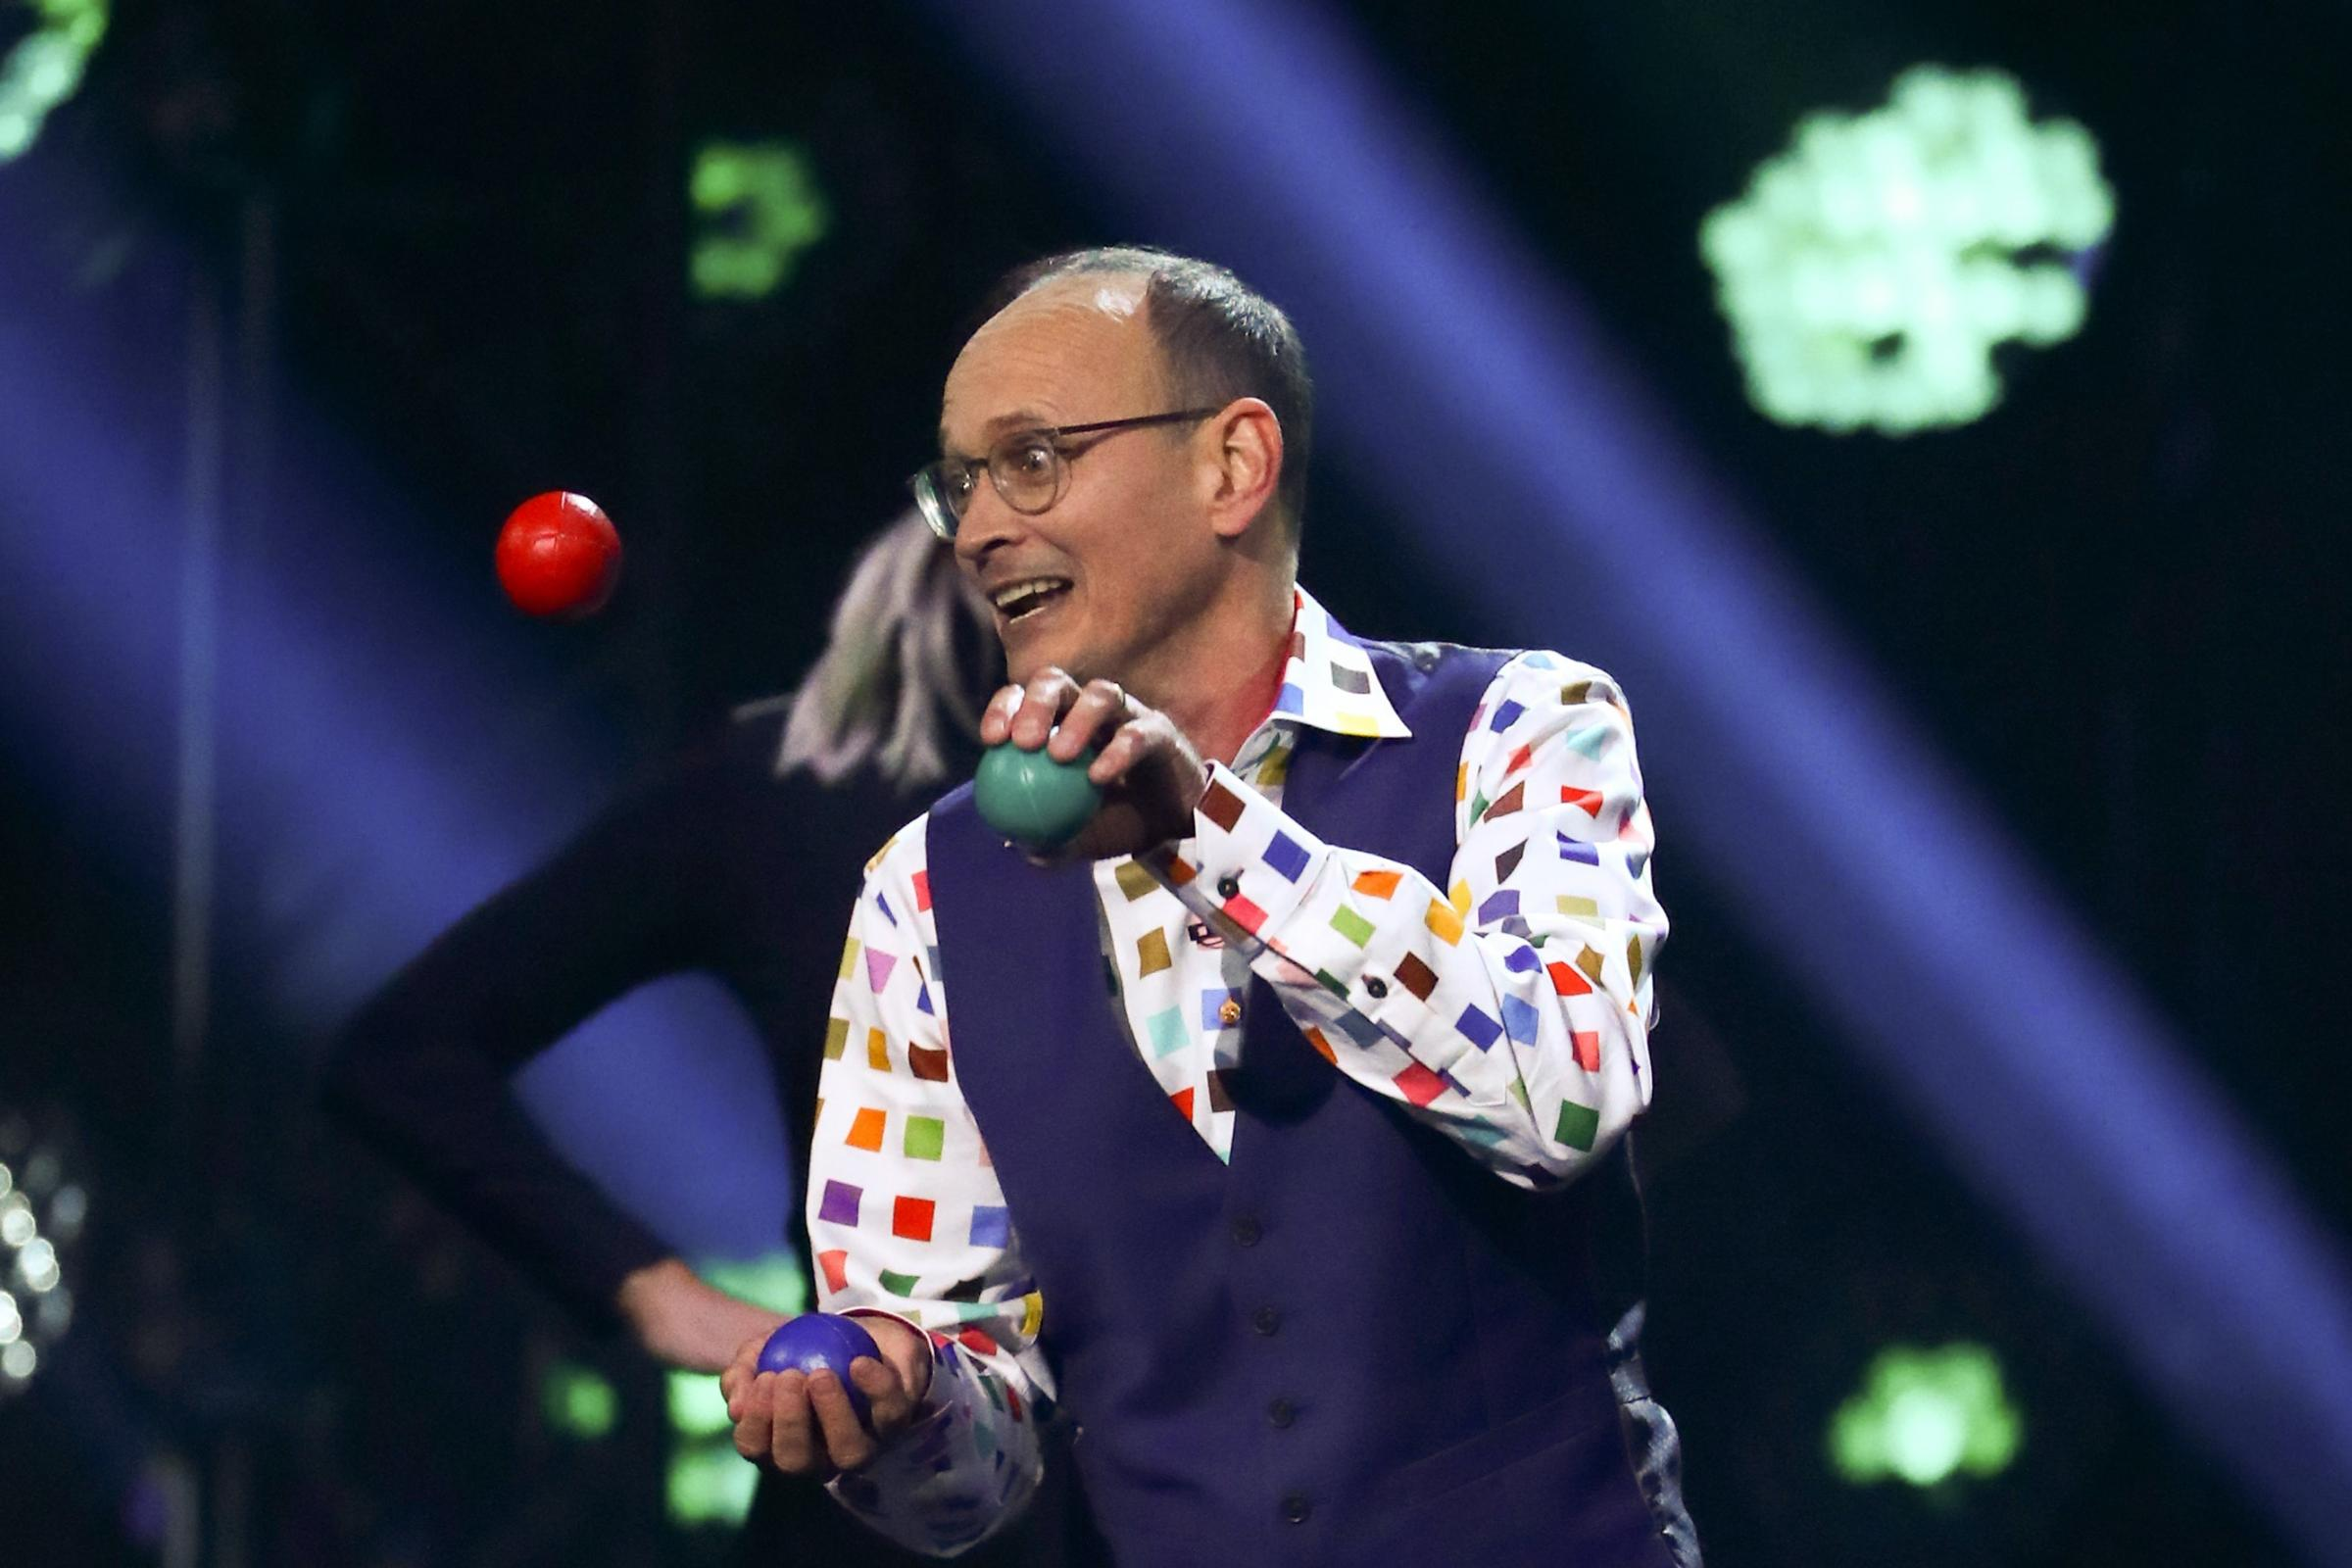 Juggling Comedian Wins Place In Final As Britain S Got Talent Returns To Tv Your Local Guardian